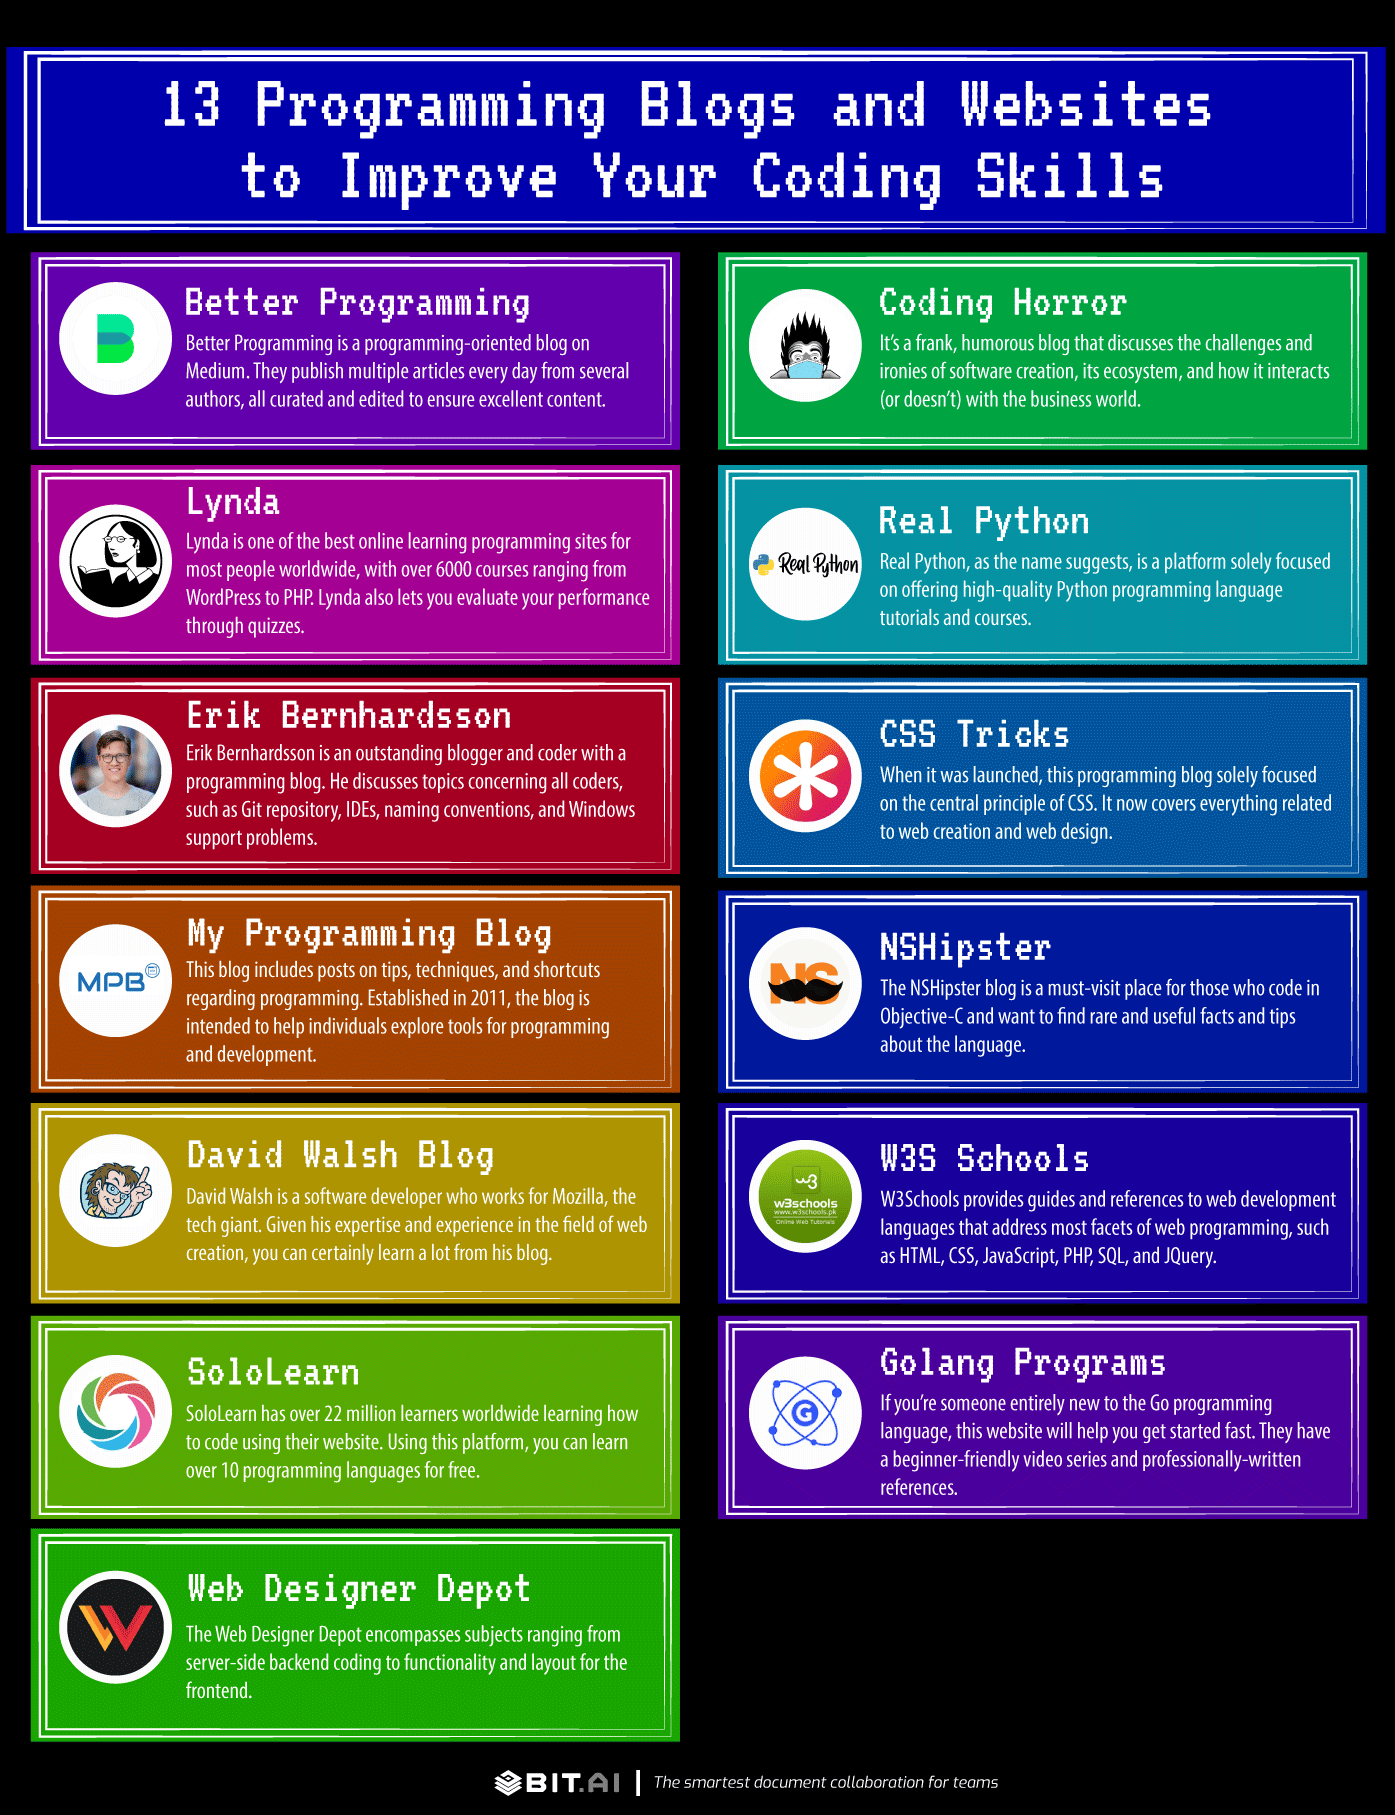 Programming blogs and websites infographic